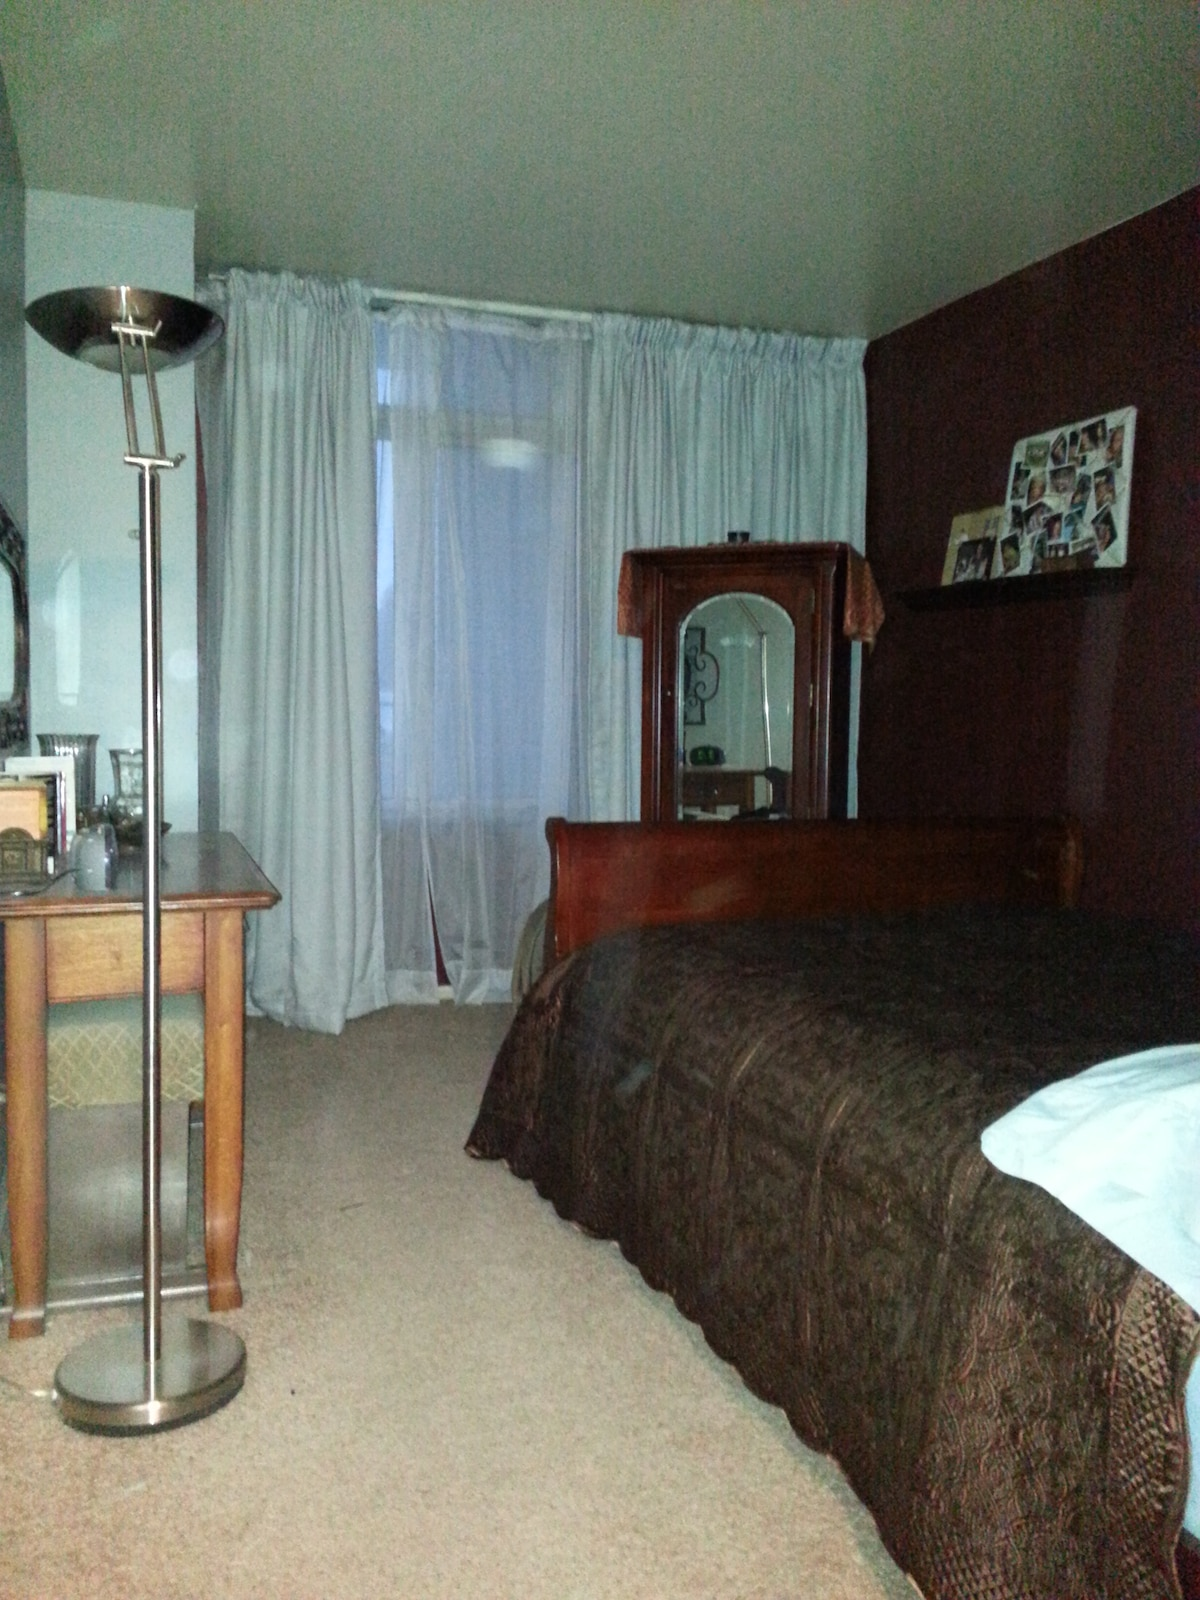 Comfortable full bed with full drapes to block light...